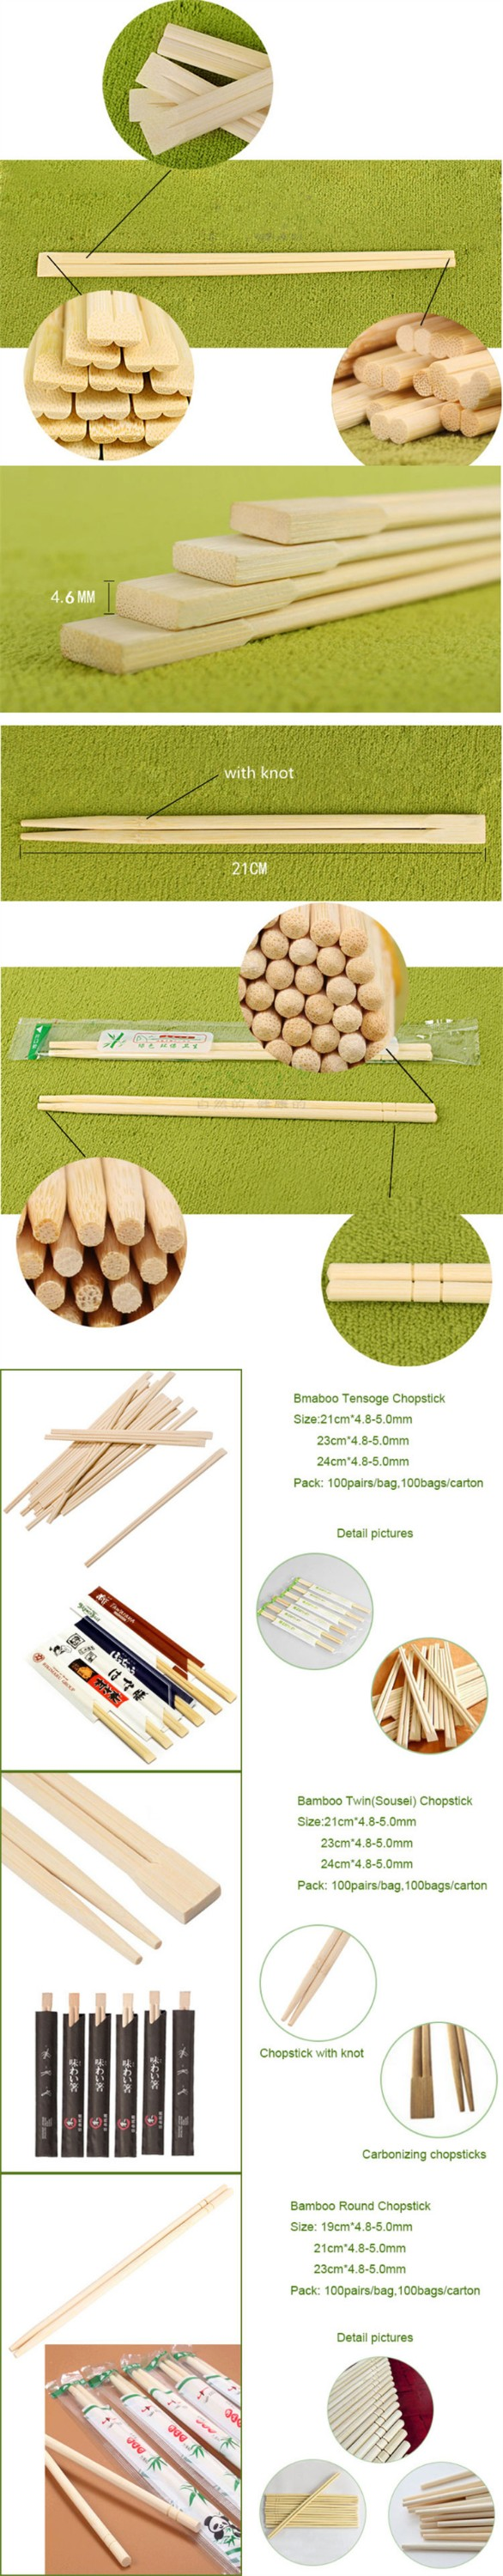 Wooden chopsticks custom disposable bamboo sushi chopstick